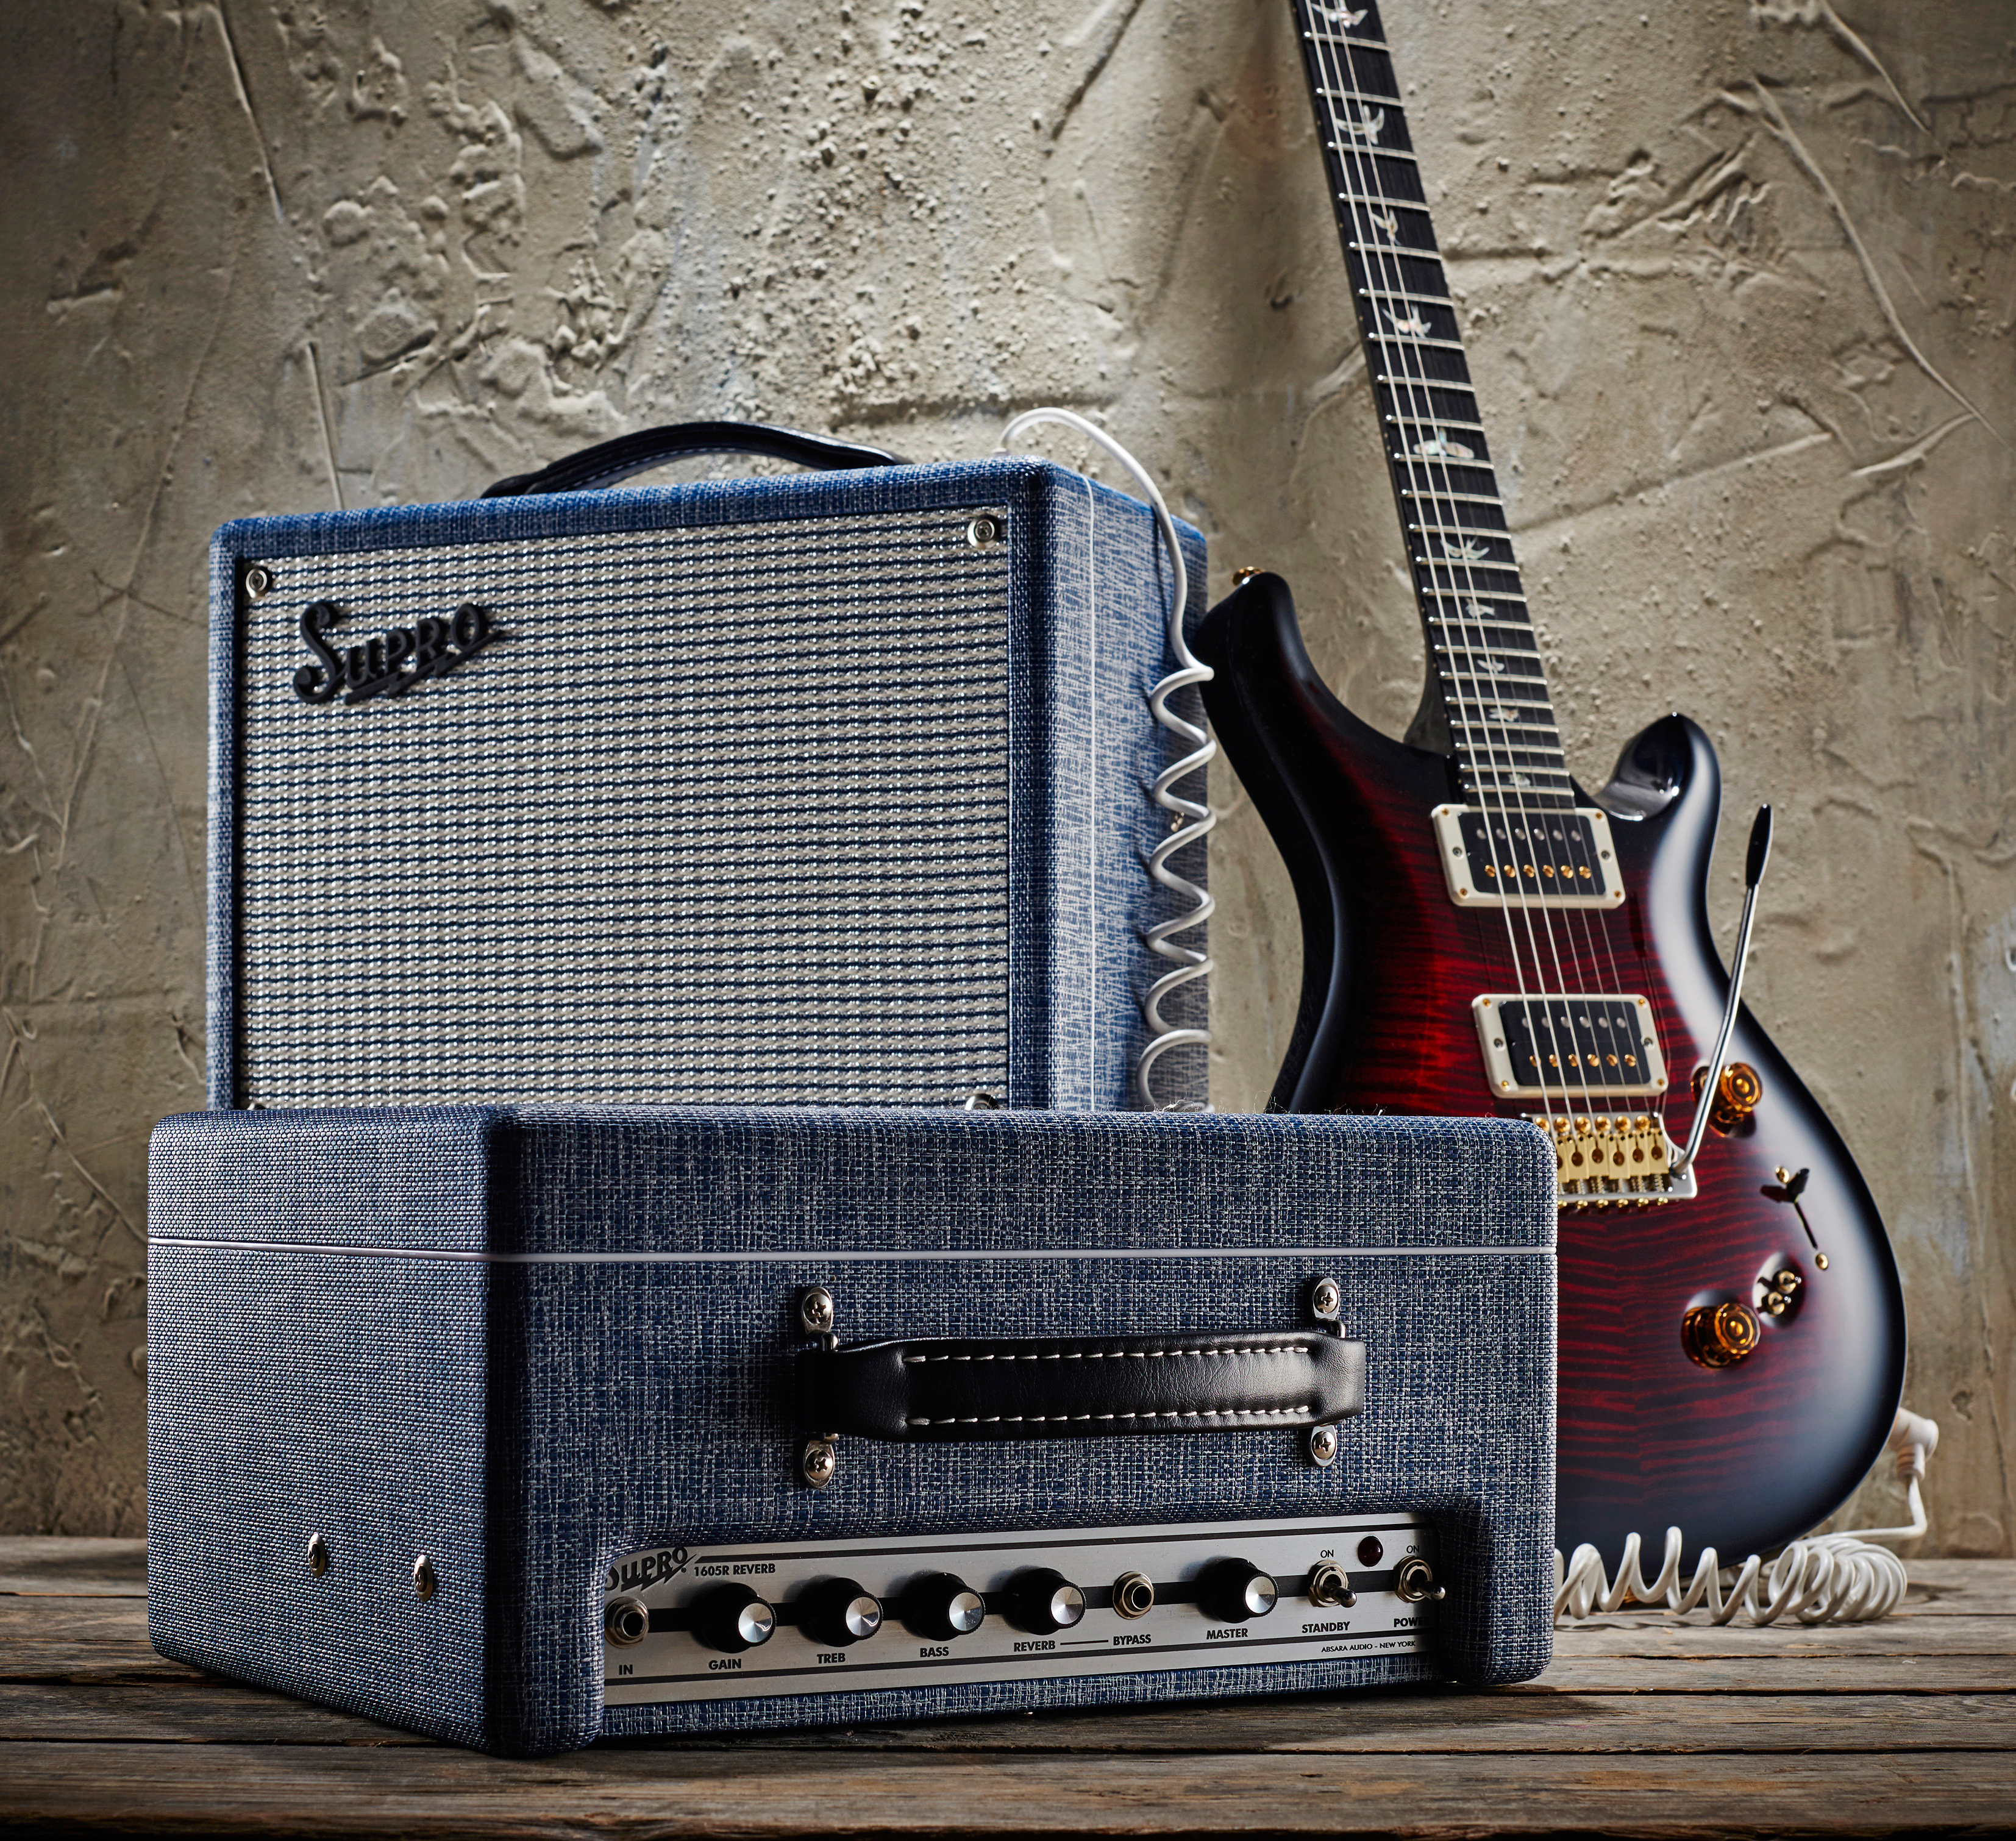 Amplifier And Effects Pedal Hardware Shoot